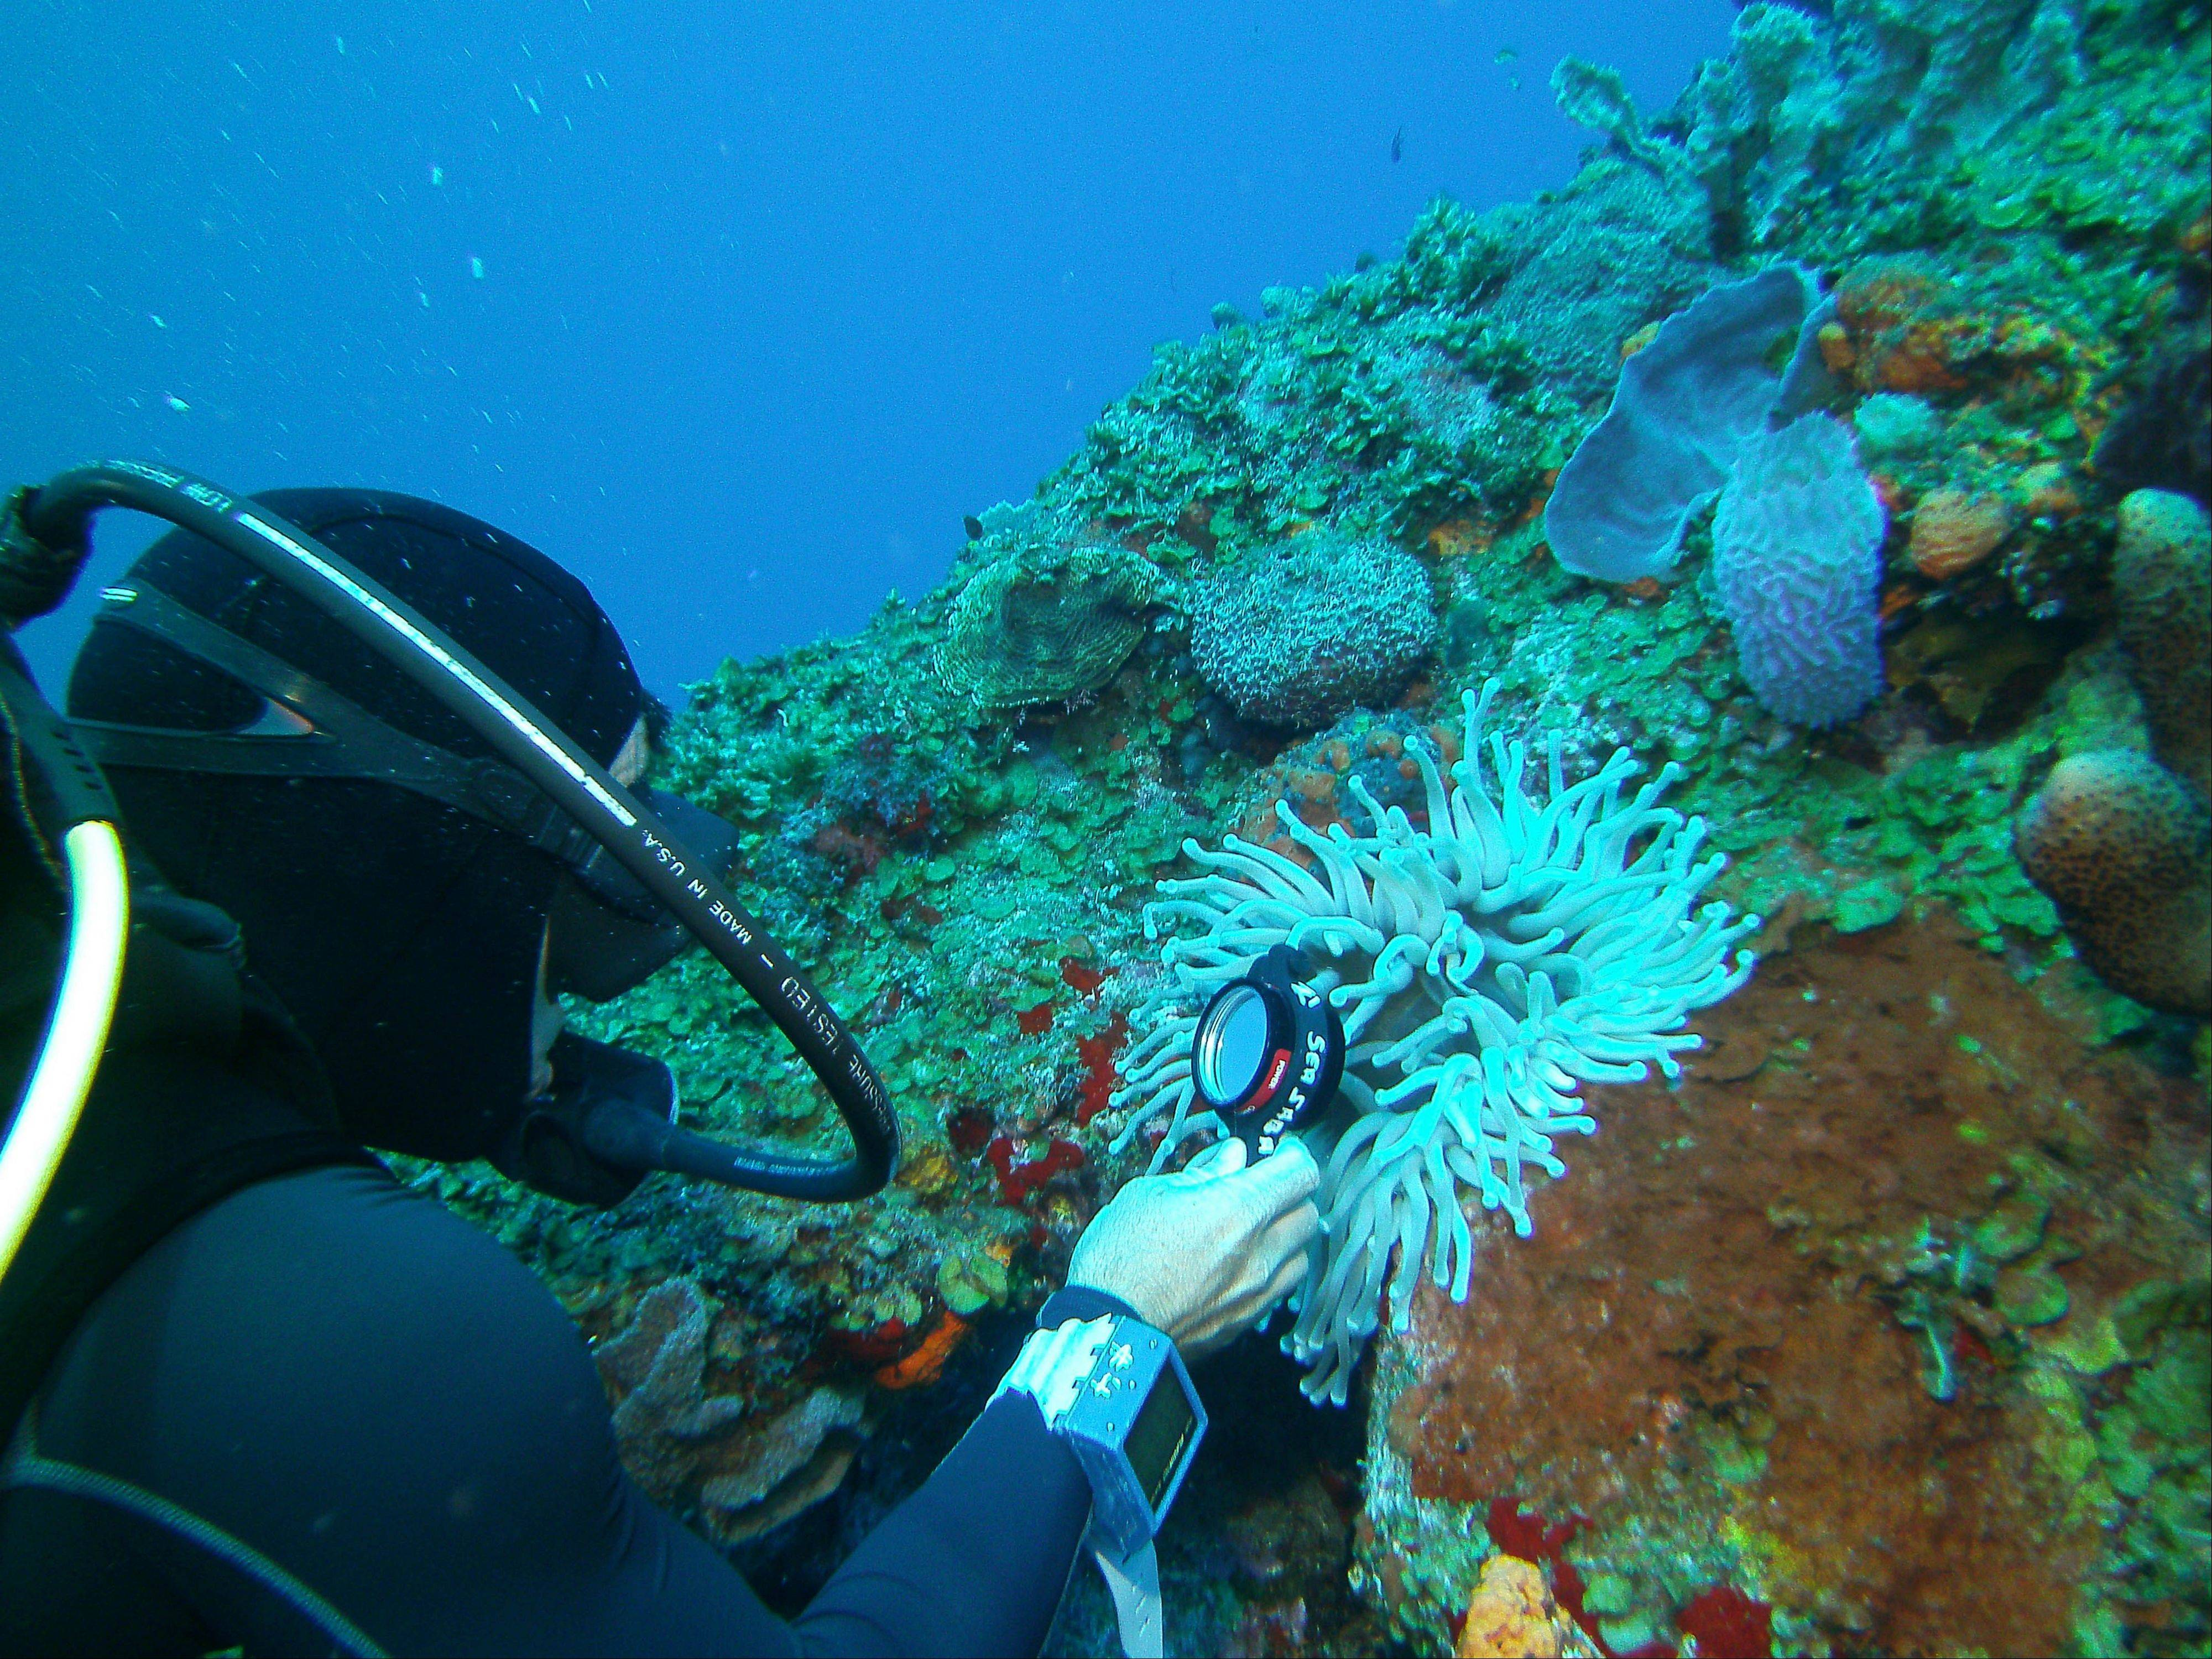 A diver uses a magnifying glass to look for a shrimp inside an anemone during a dive at the Shark Shoal site.